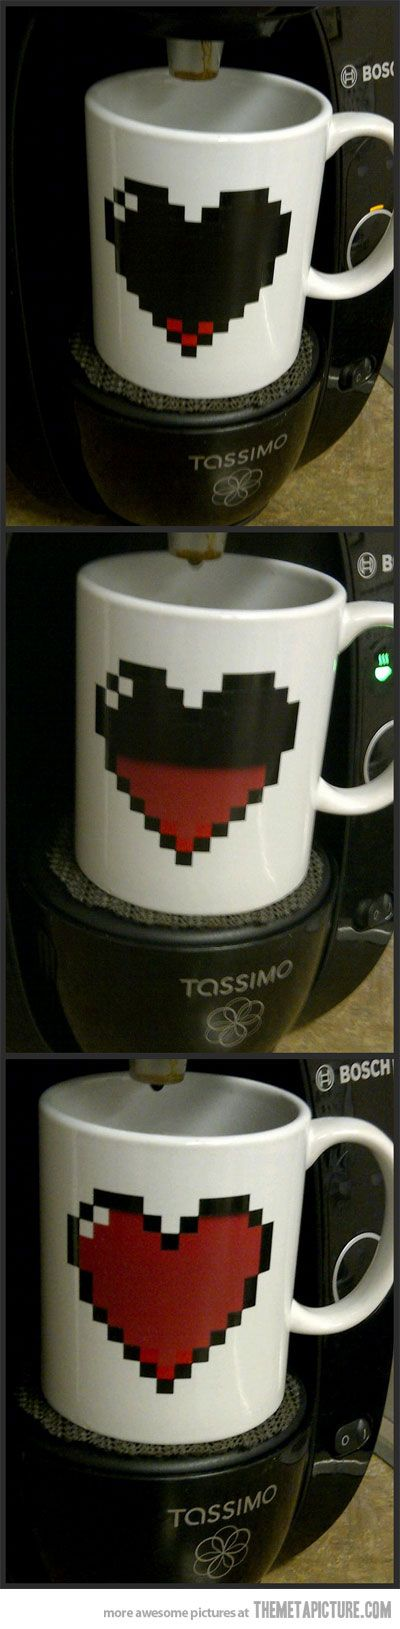 I can always use more coffee mugs, right?: Geek Mug, Zelda Coffee, Zelda Heart, Heart Fills, Zelda Mug, Coffee Cups, Heart Heat, Coffee Mugs